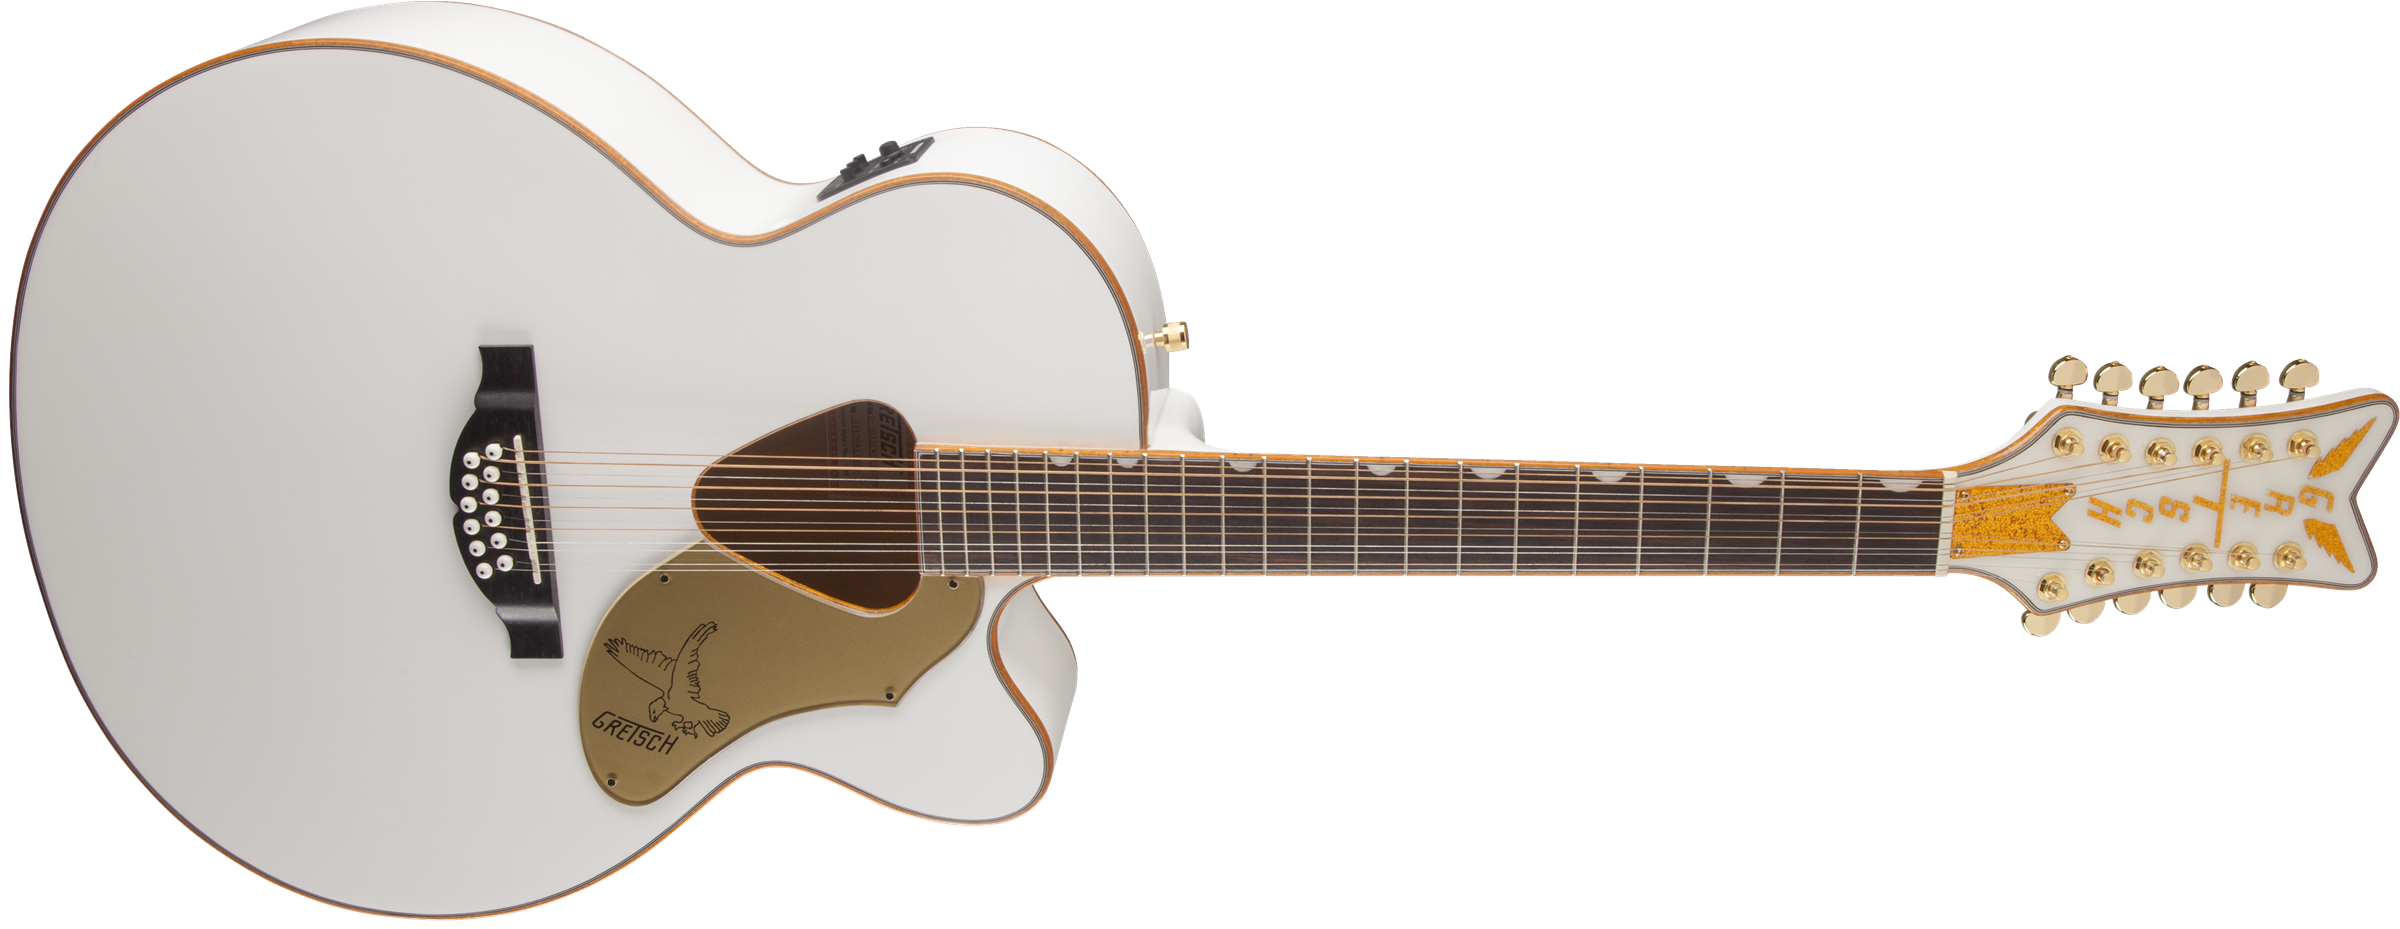 png free download Acoustic clipart guitar string. Free on dumielauxepices net.